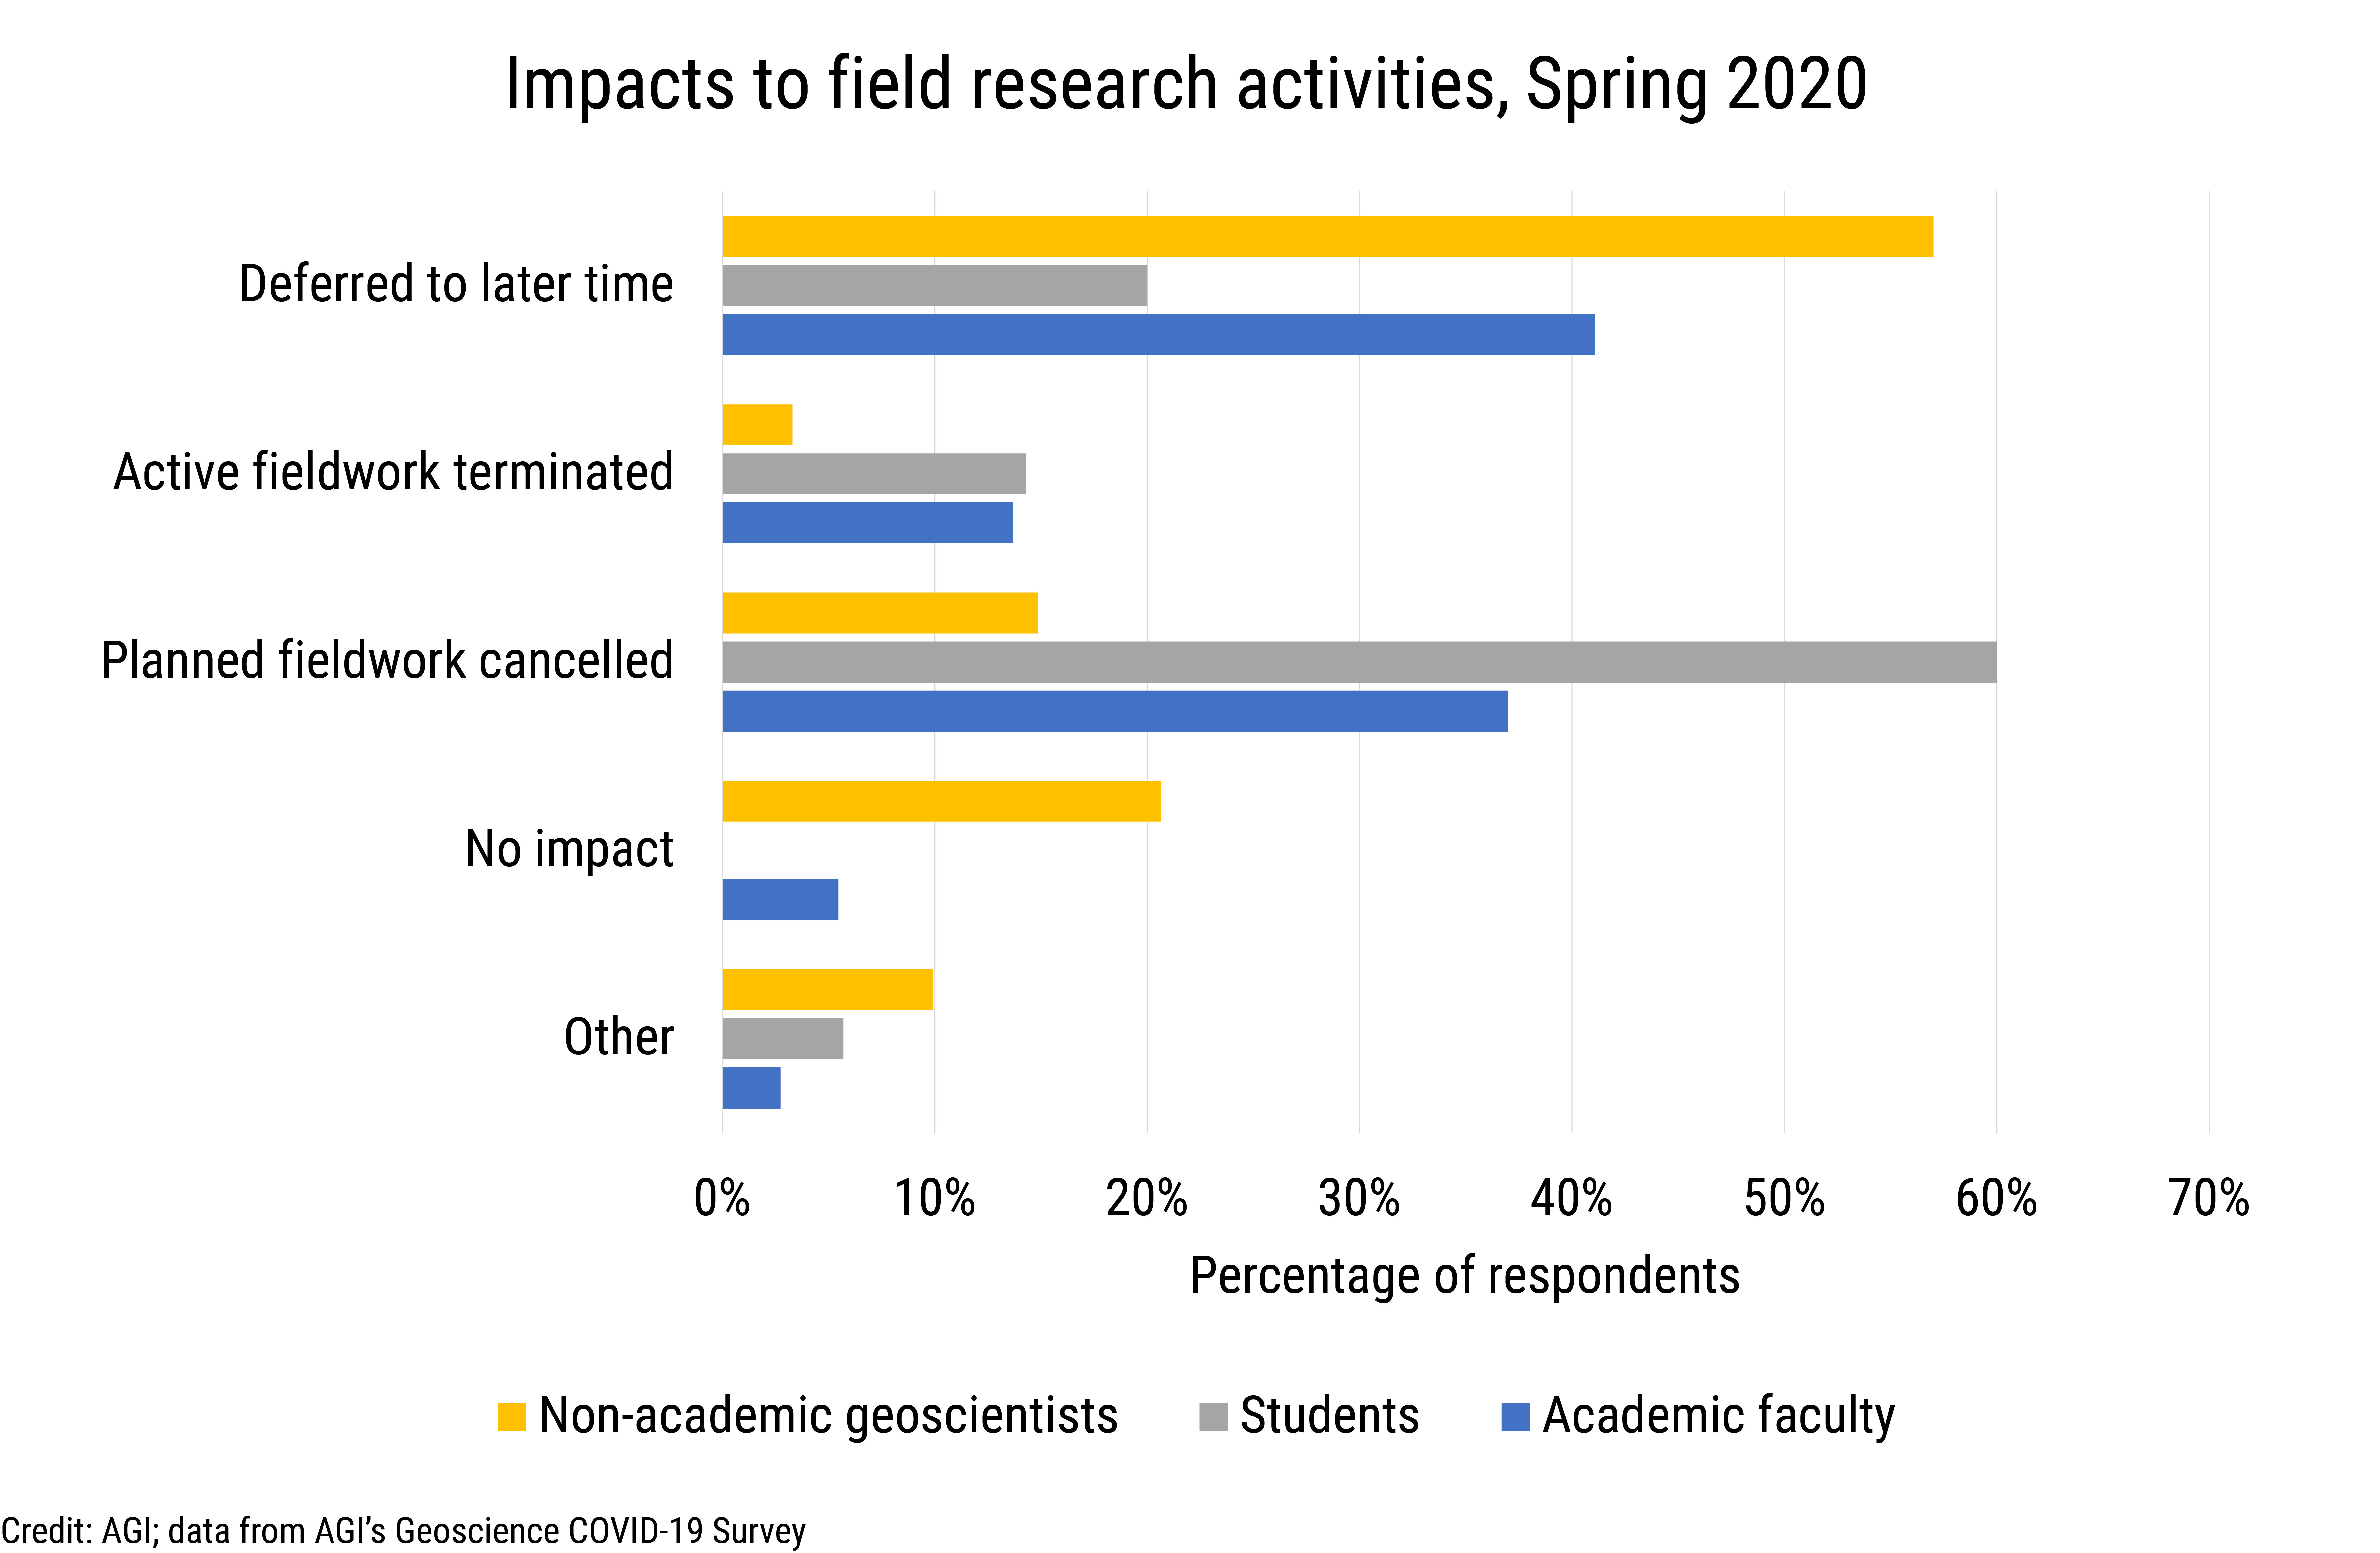 Data Brief 2020-009 chart 02: Impacts to field research activities, Spring 2020 (credit: AGI; data derived from AGI's Geoscience COVID-19 Survey)